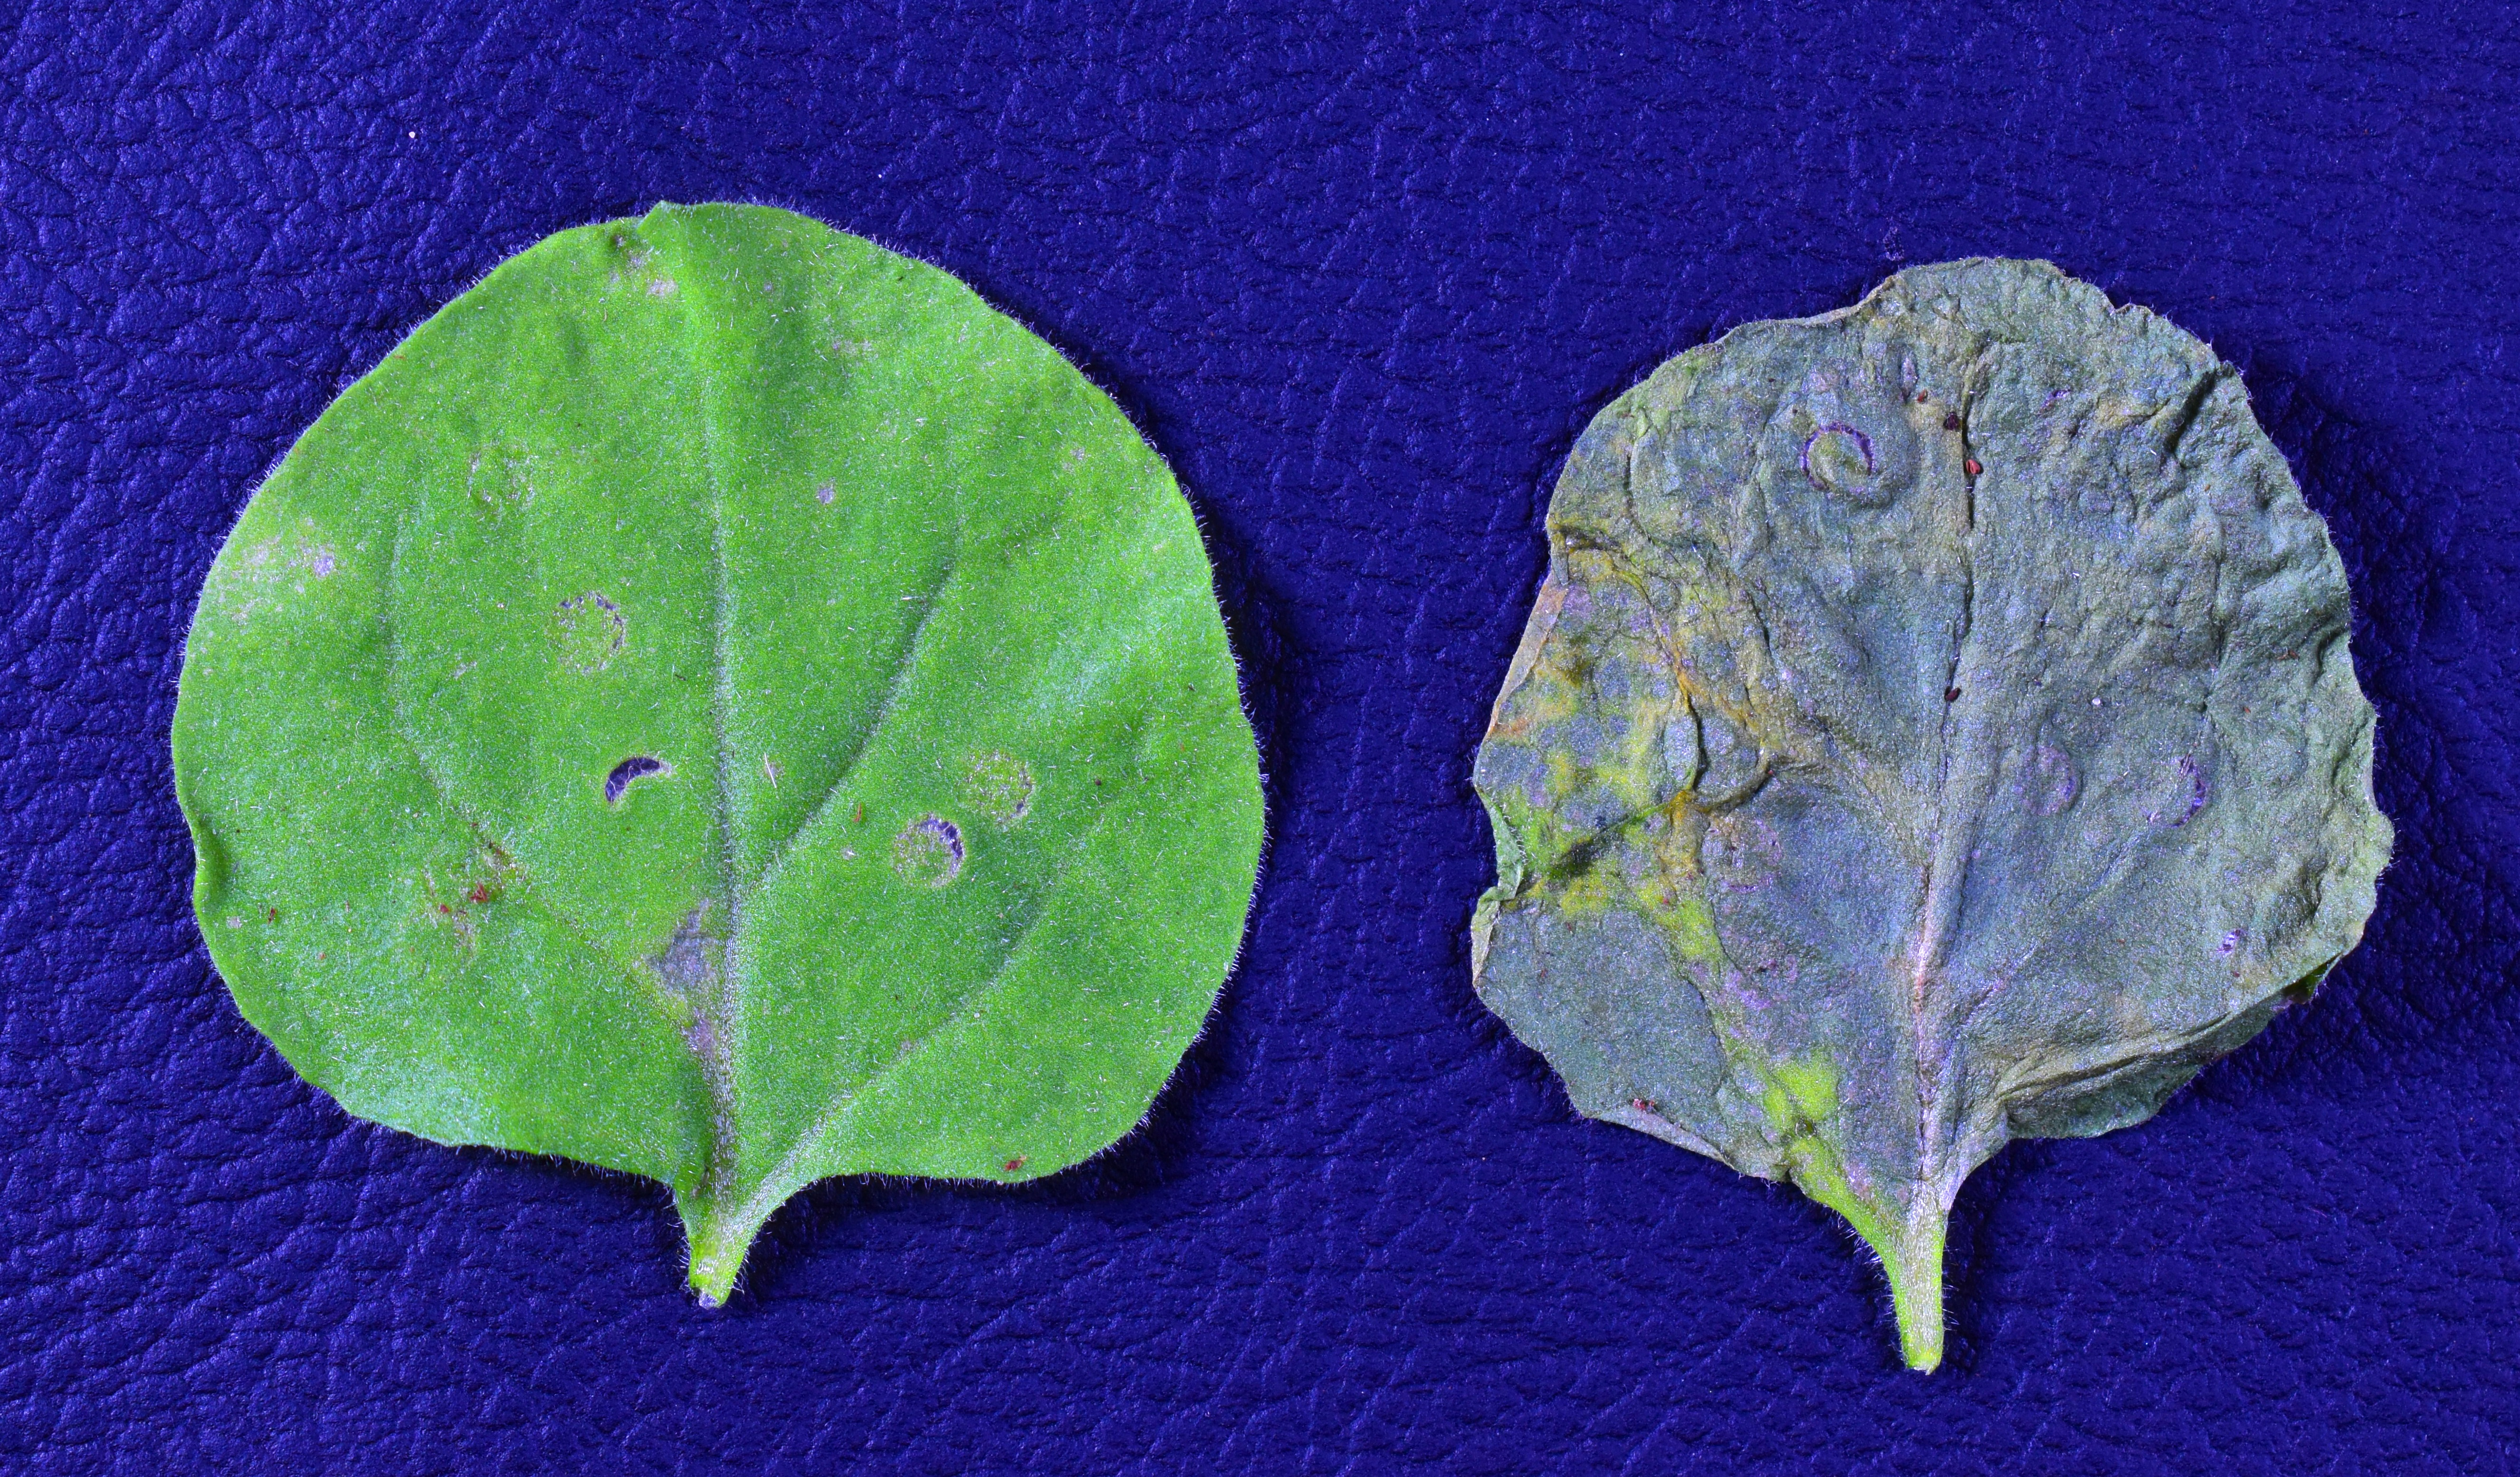 Two leaves, one affected and one unaffected by common crop bacteria Pseudomonas syringae